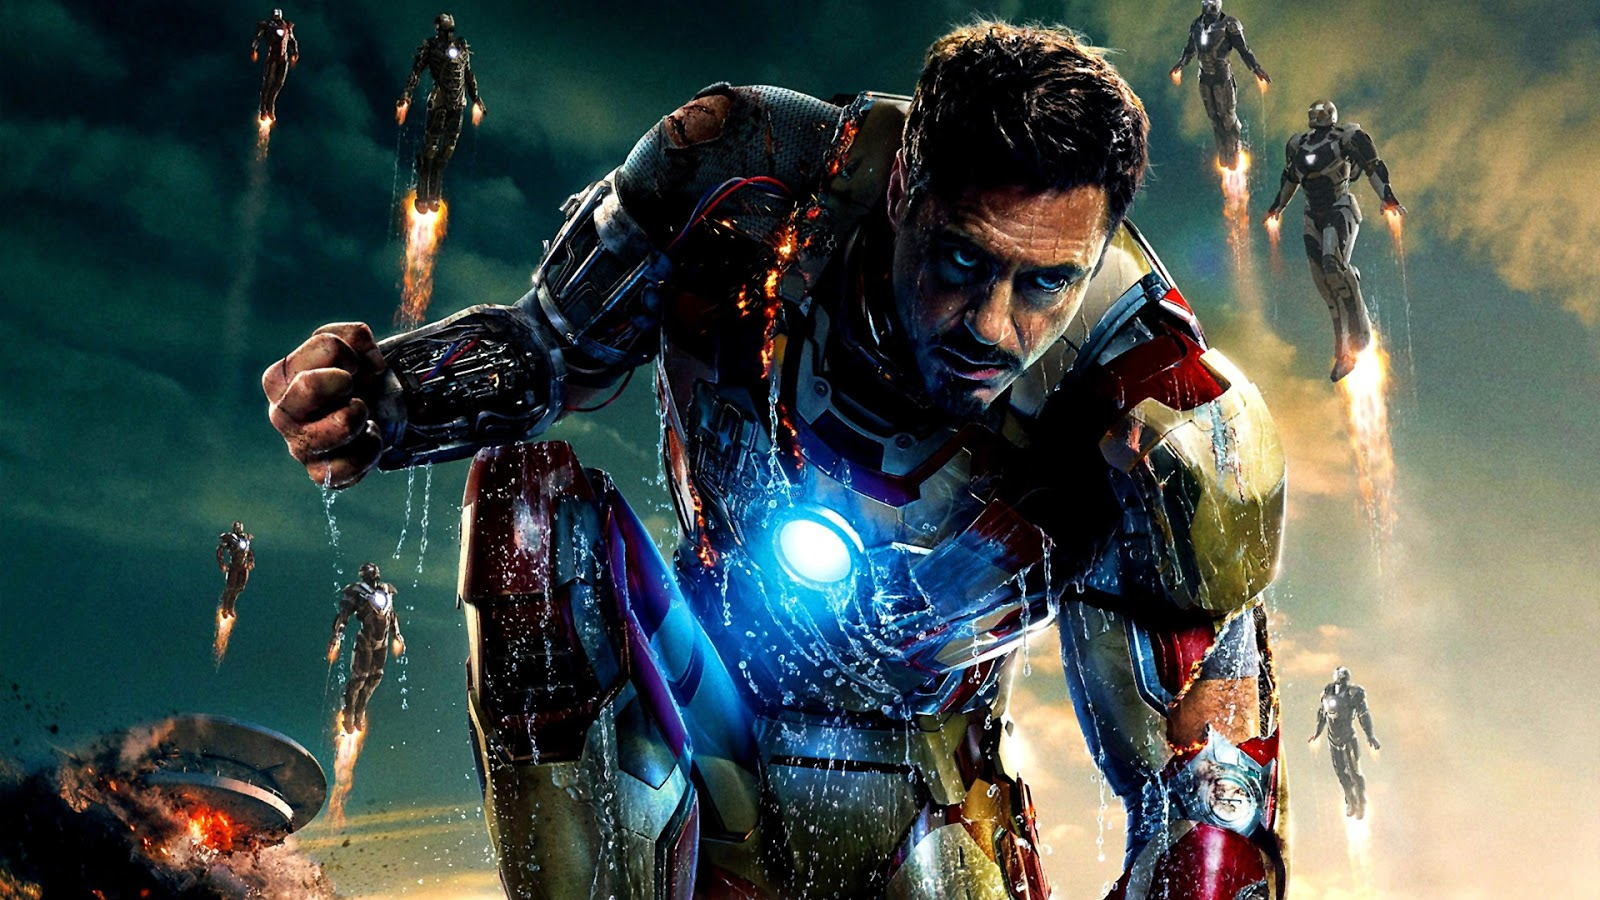 Free Download Iron Man 3 2013 Hd Wallpapers 1080p Hd